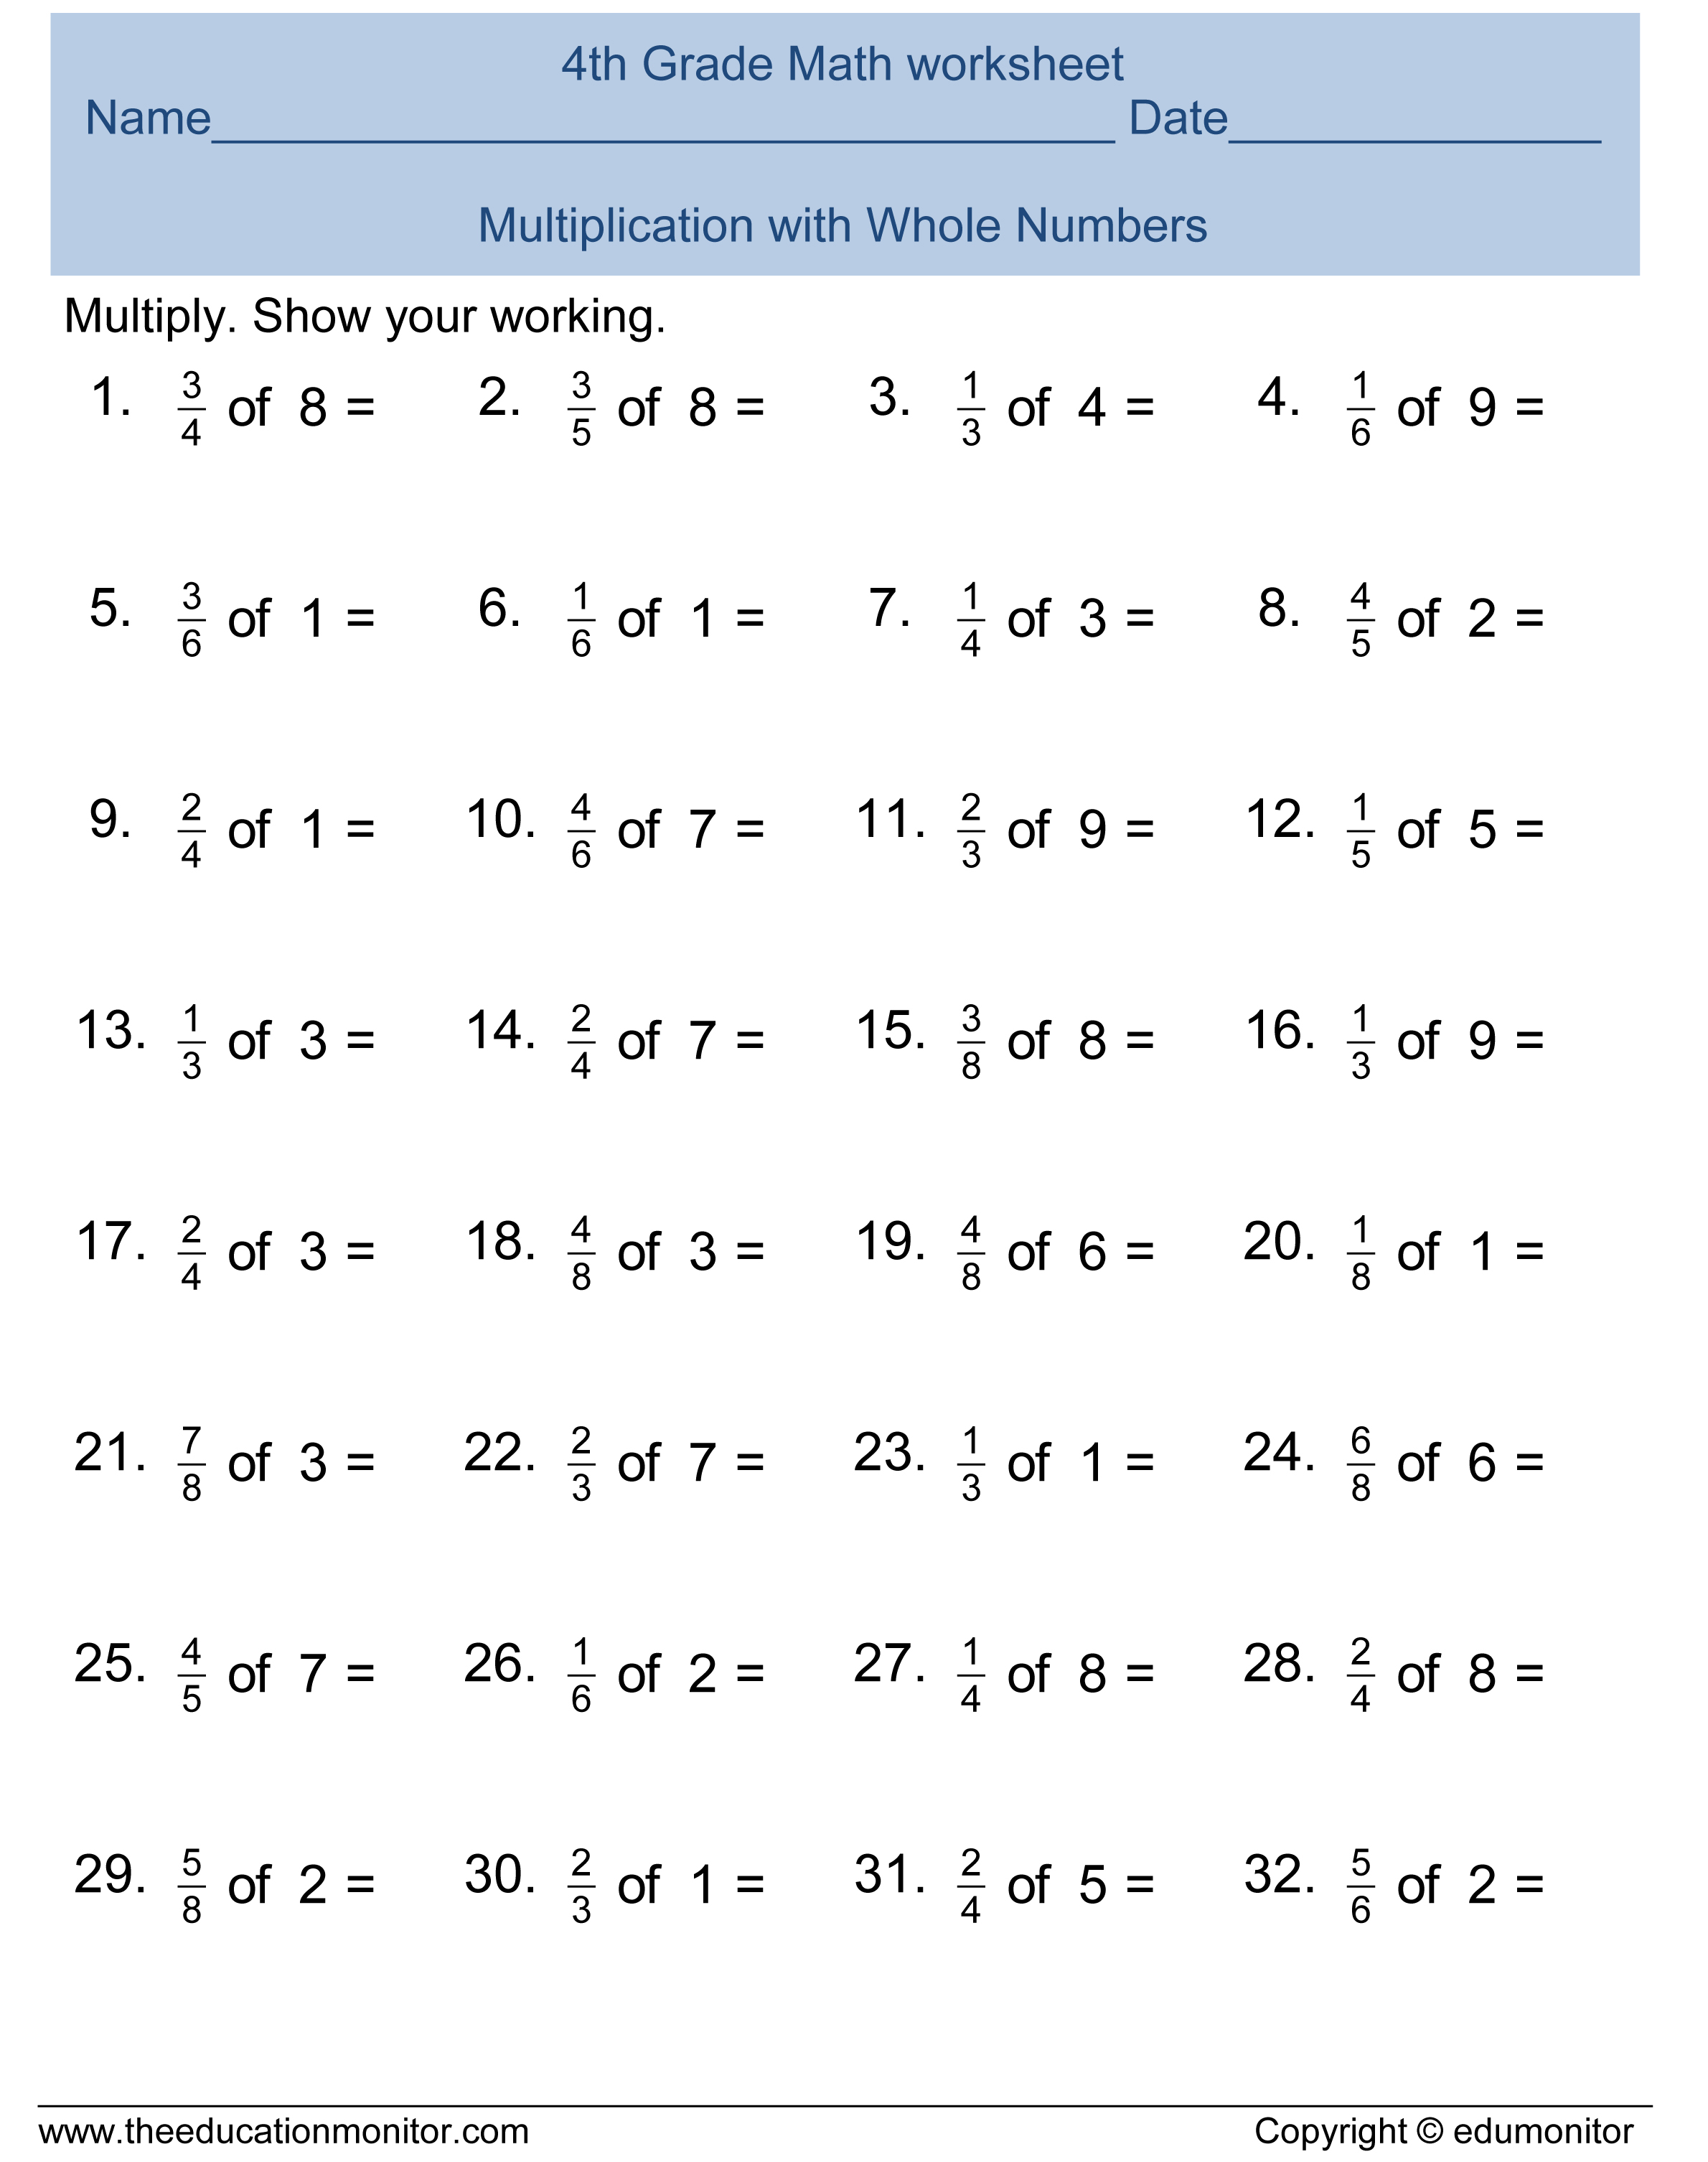 Super Teacher Worksheets 4th Grade Math aprita – Adding and Subtracting Fractions Practice Worksheets